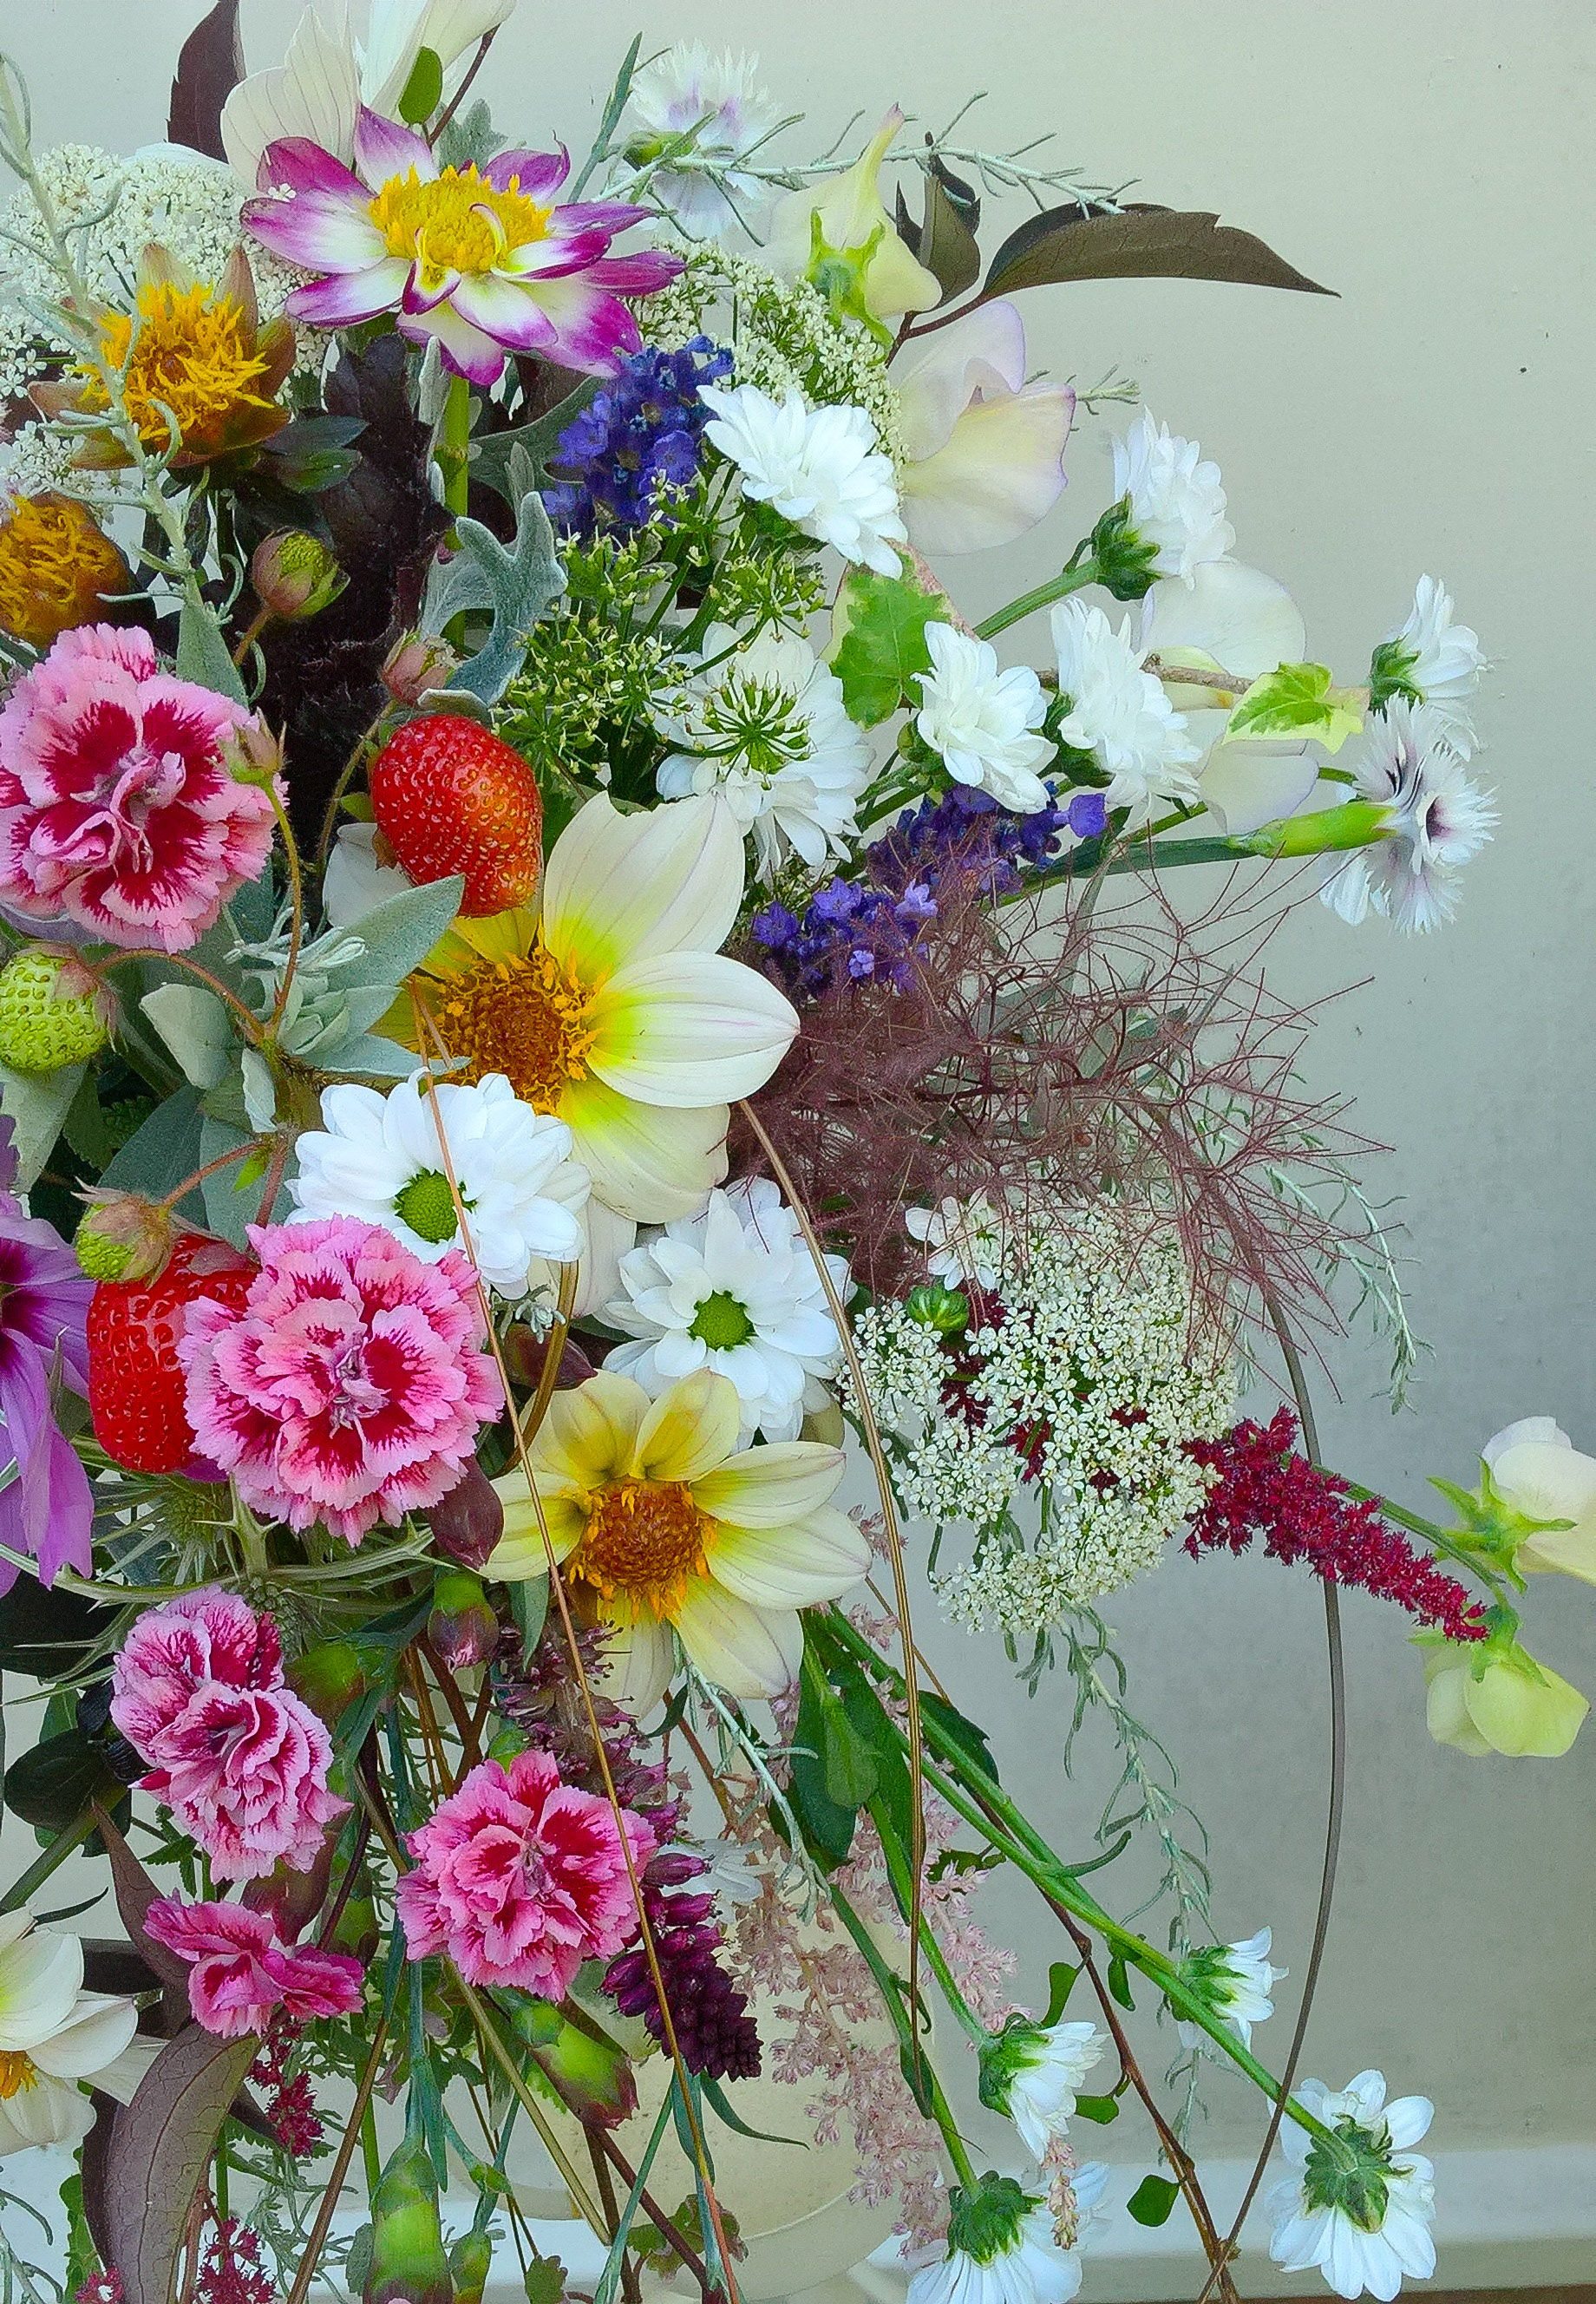 Summer Uk Bouquet Of Dahlias Herbs Cowparsley And Garden Fresh Flowers For Further Details Please Contact Flowers Wedding Flowers Fresh Flowers